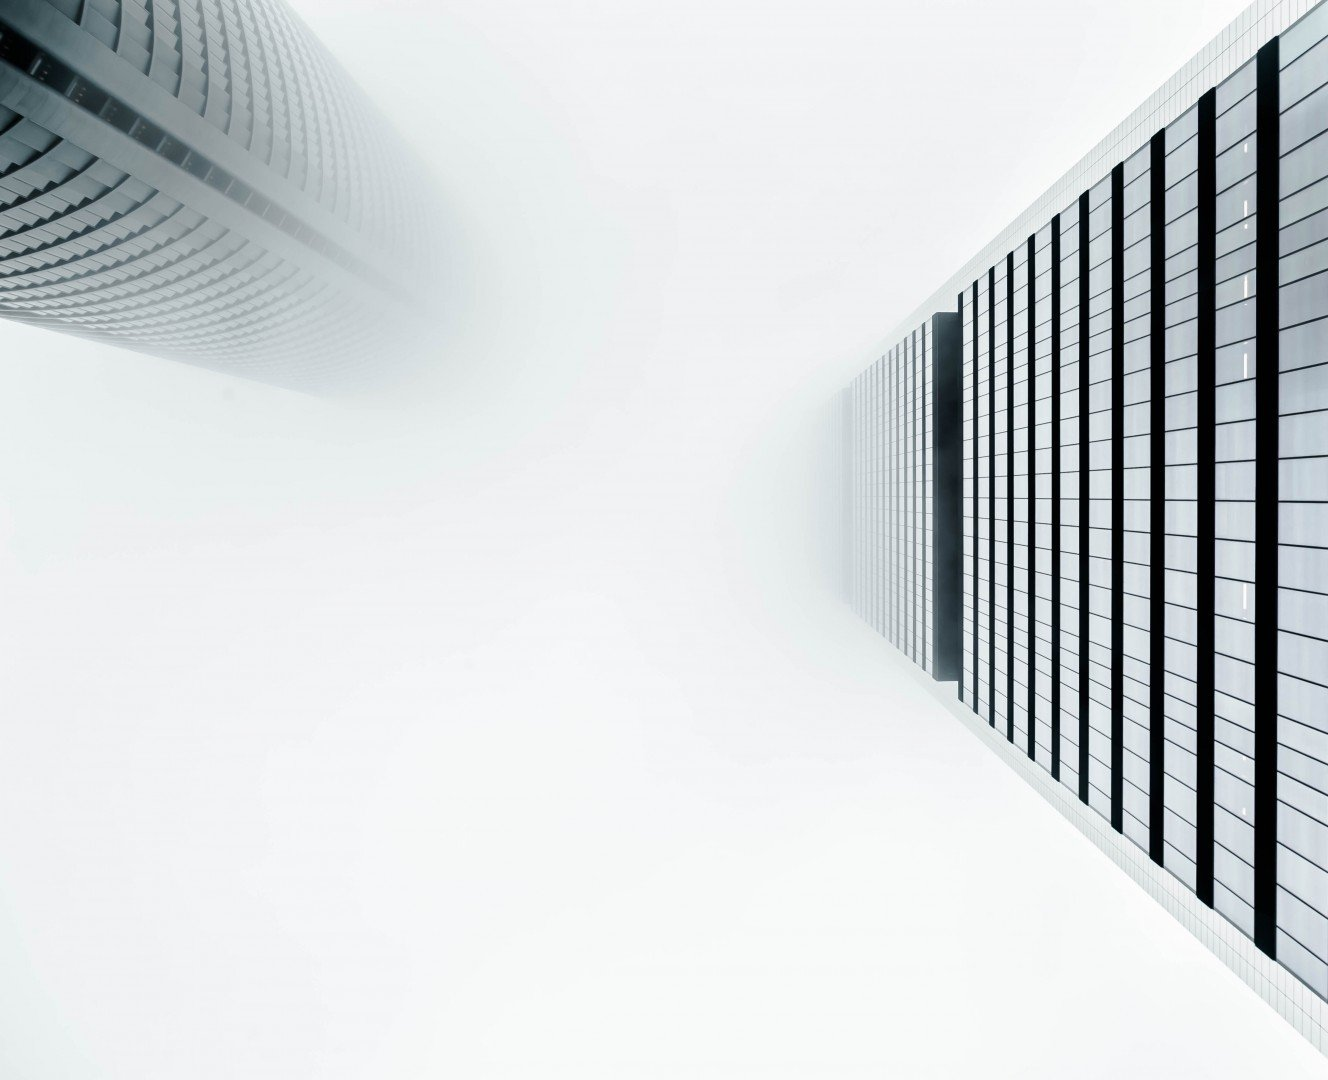 perspective of towers from below